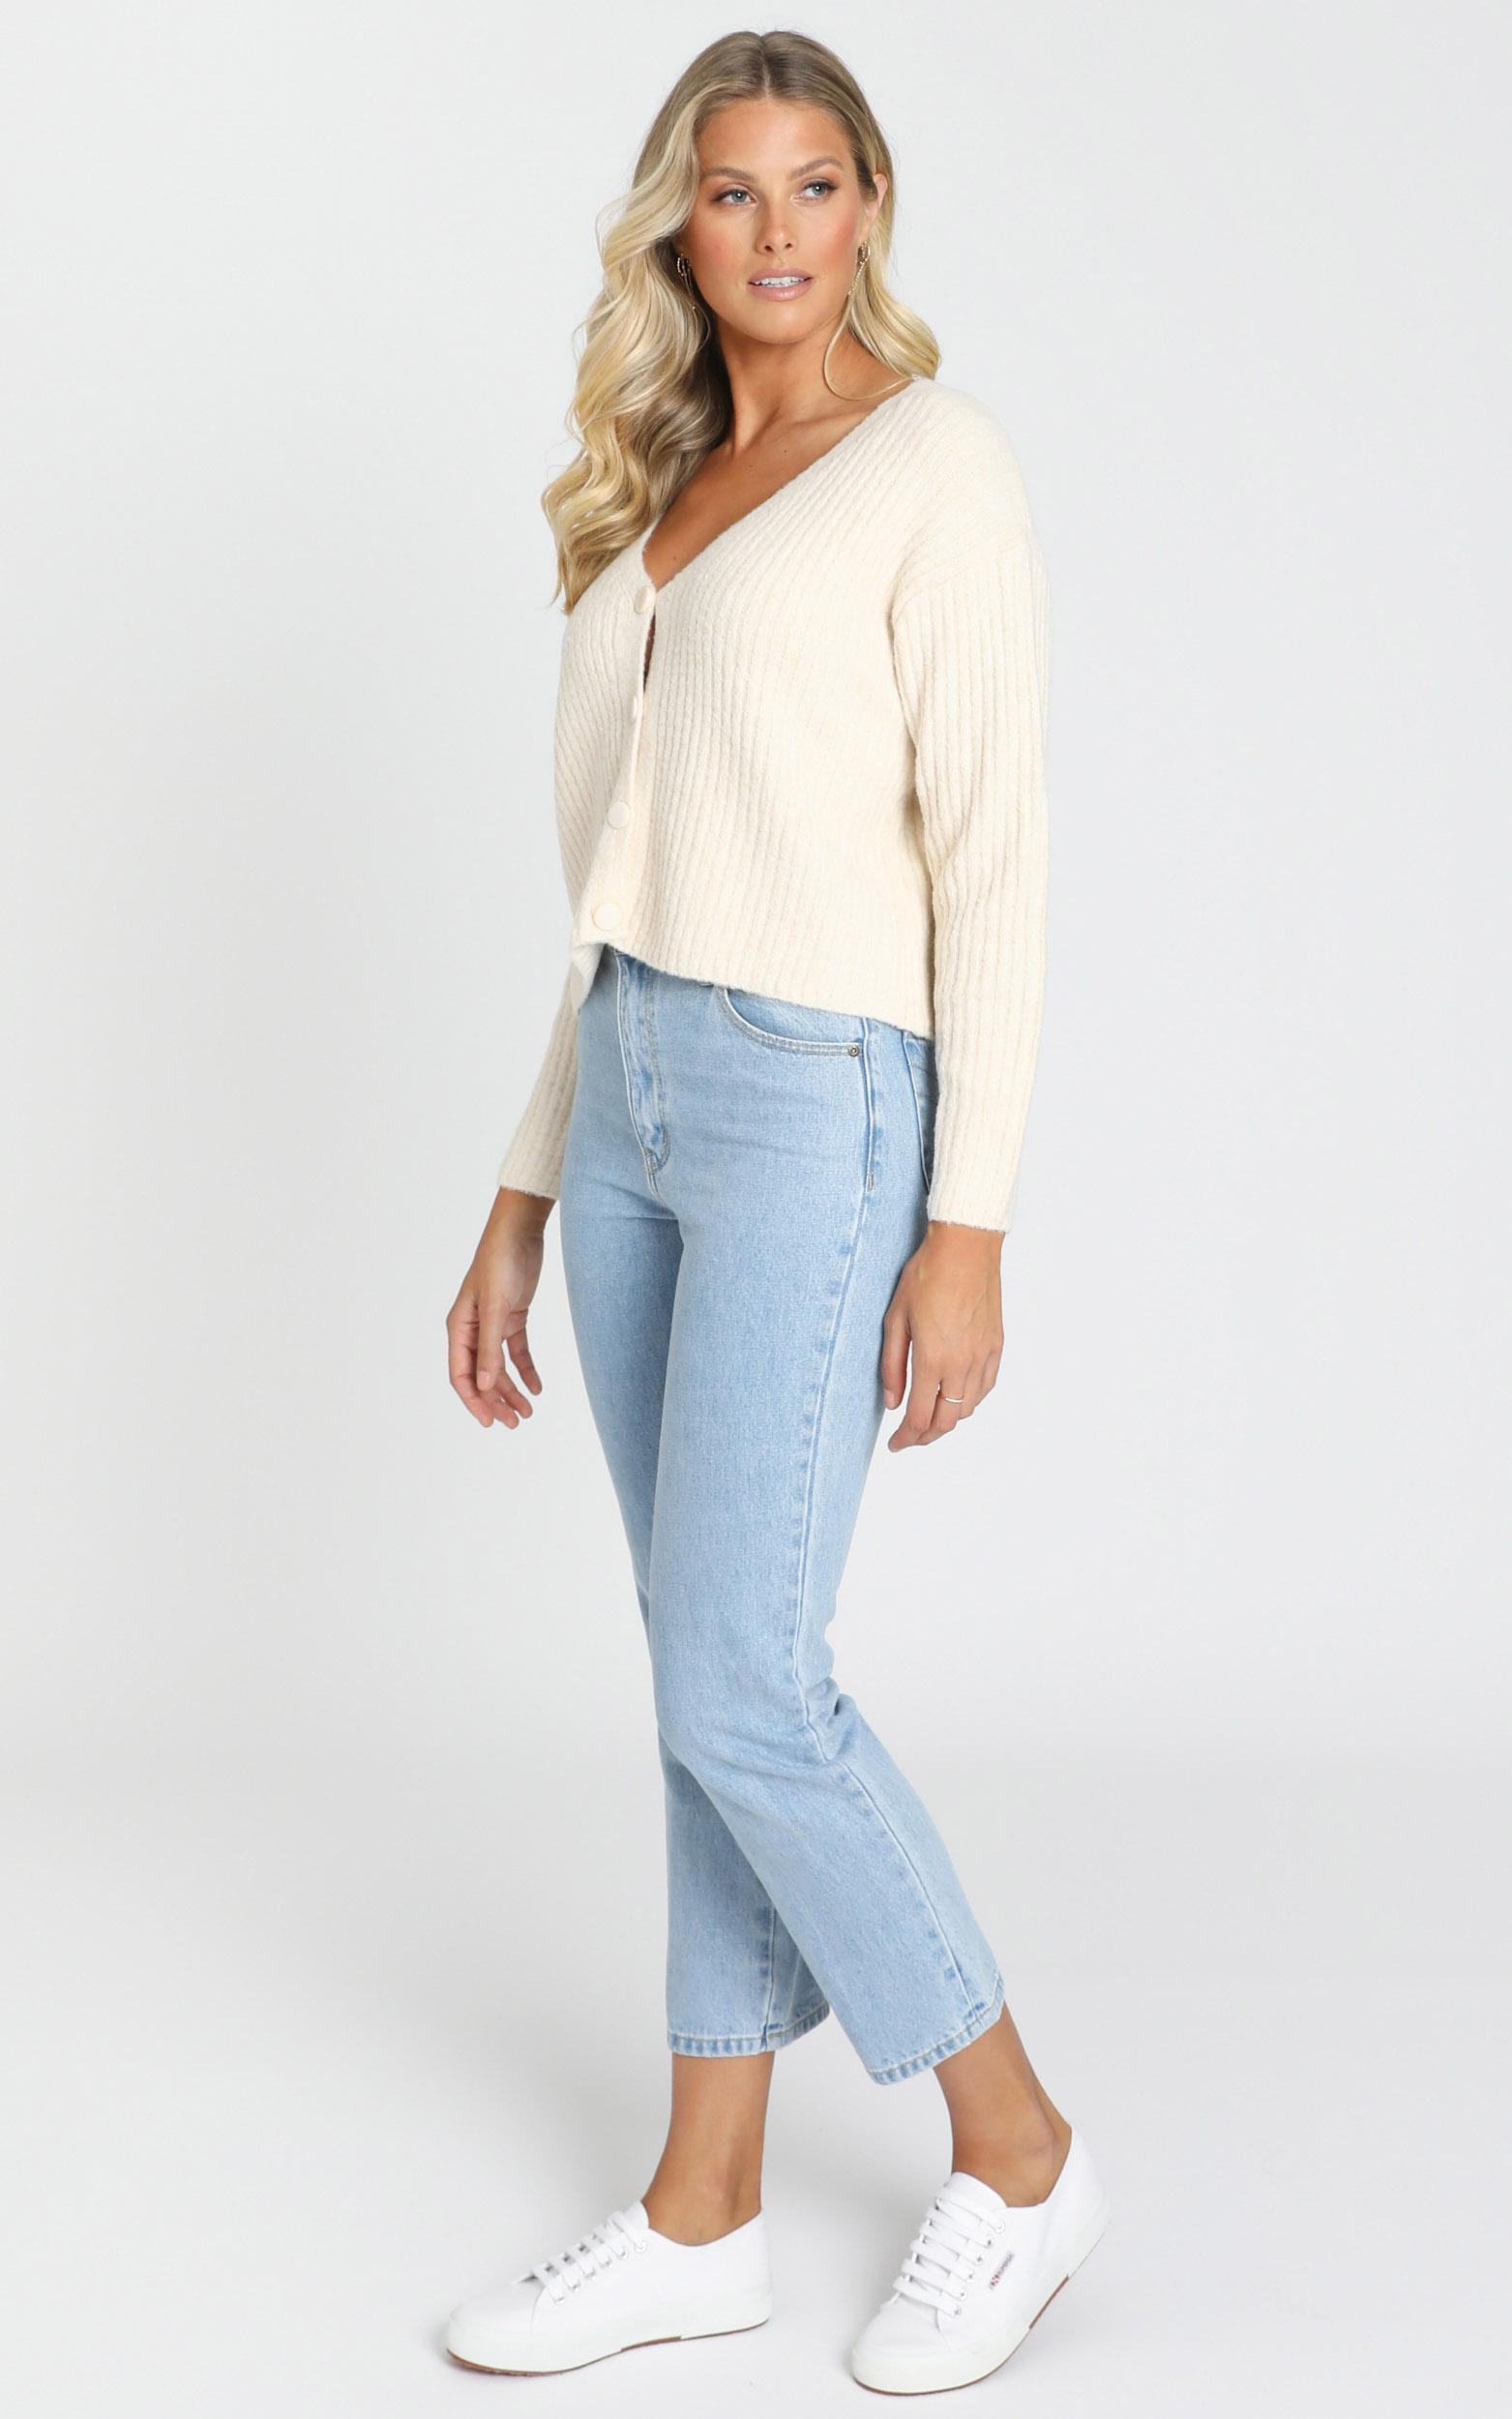 Charlize Knitted Cardigan in latte - S/M, Cream, hi-res image number null